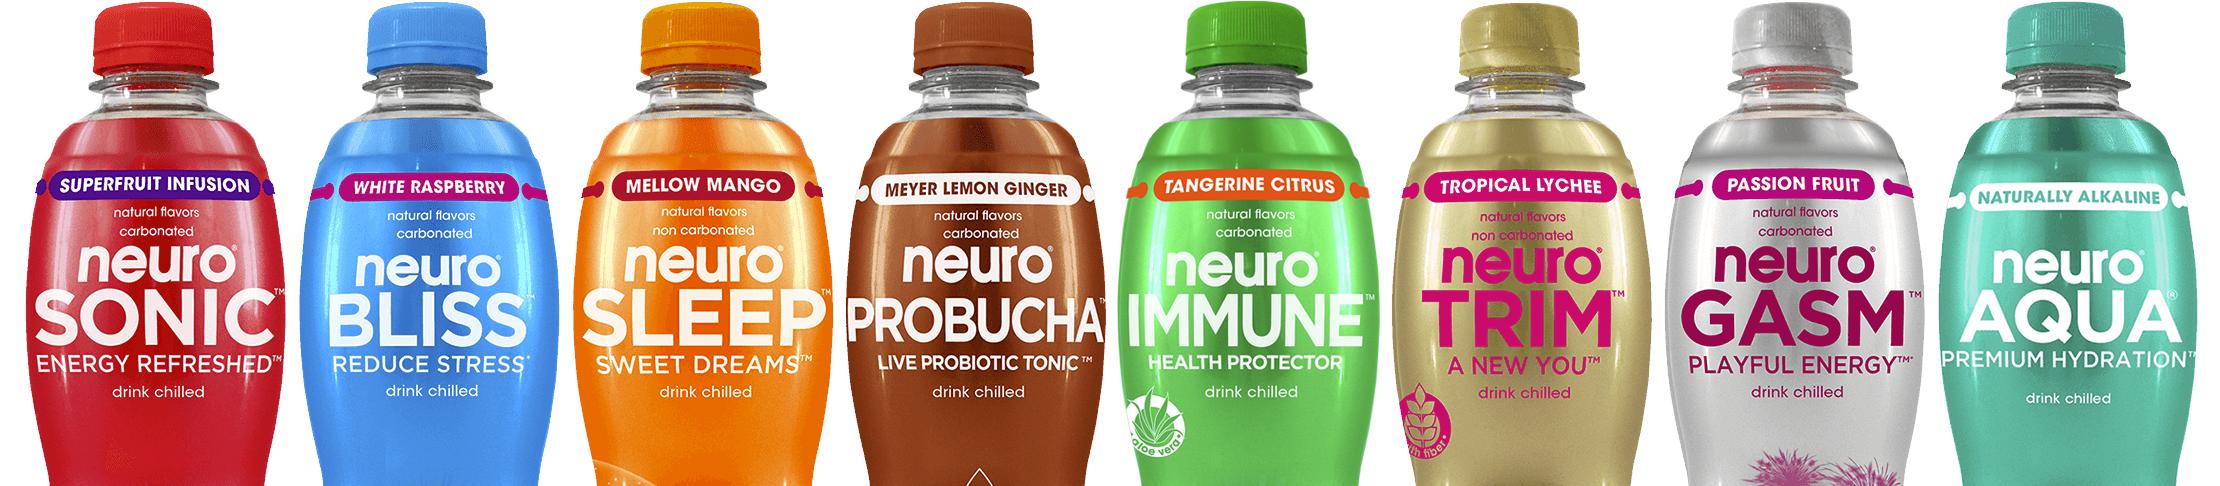 neuro-all-drinks